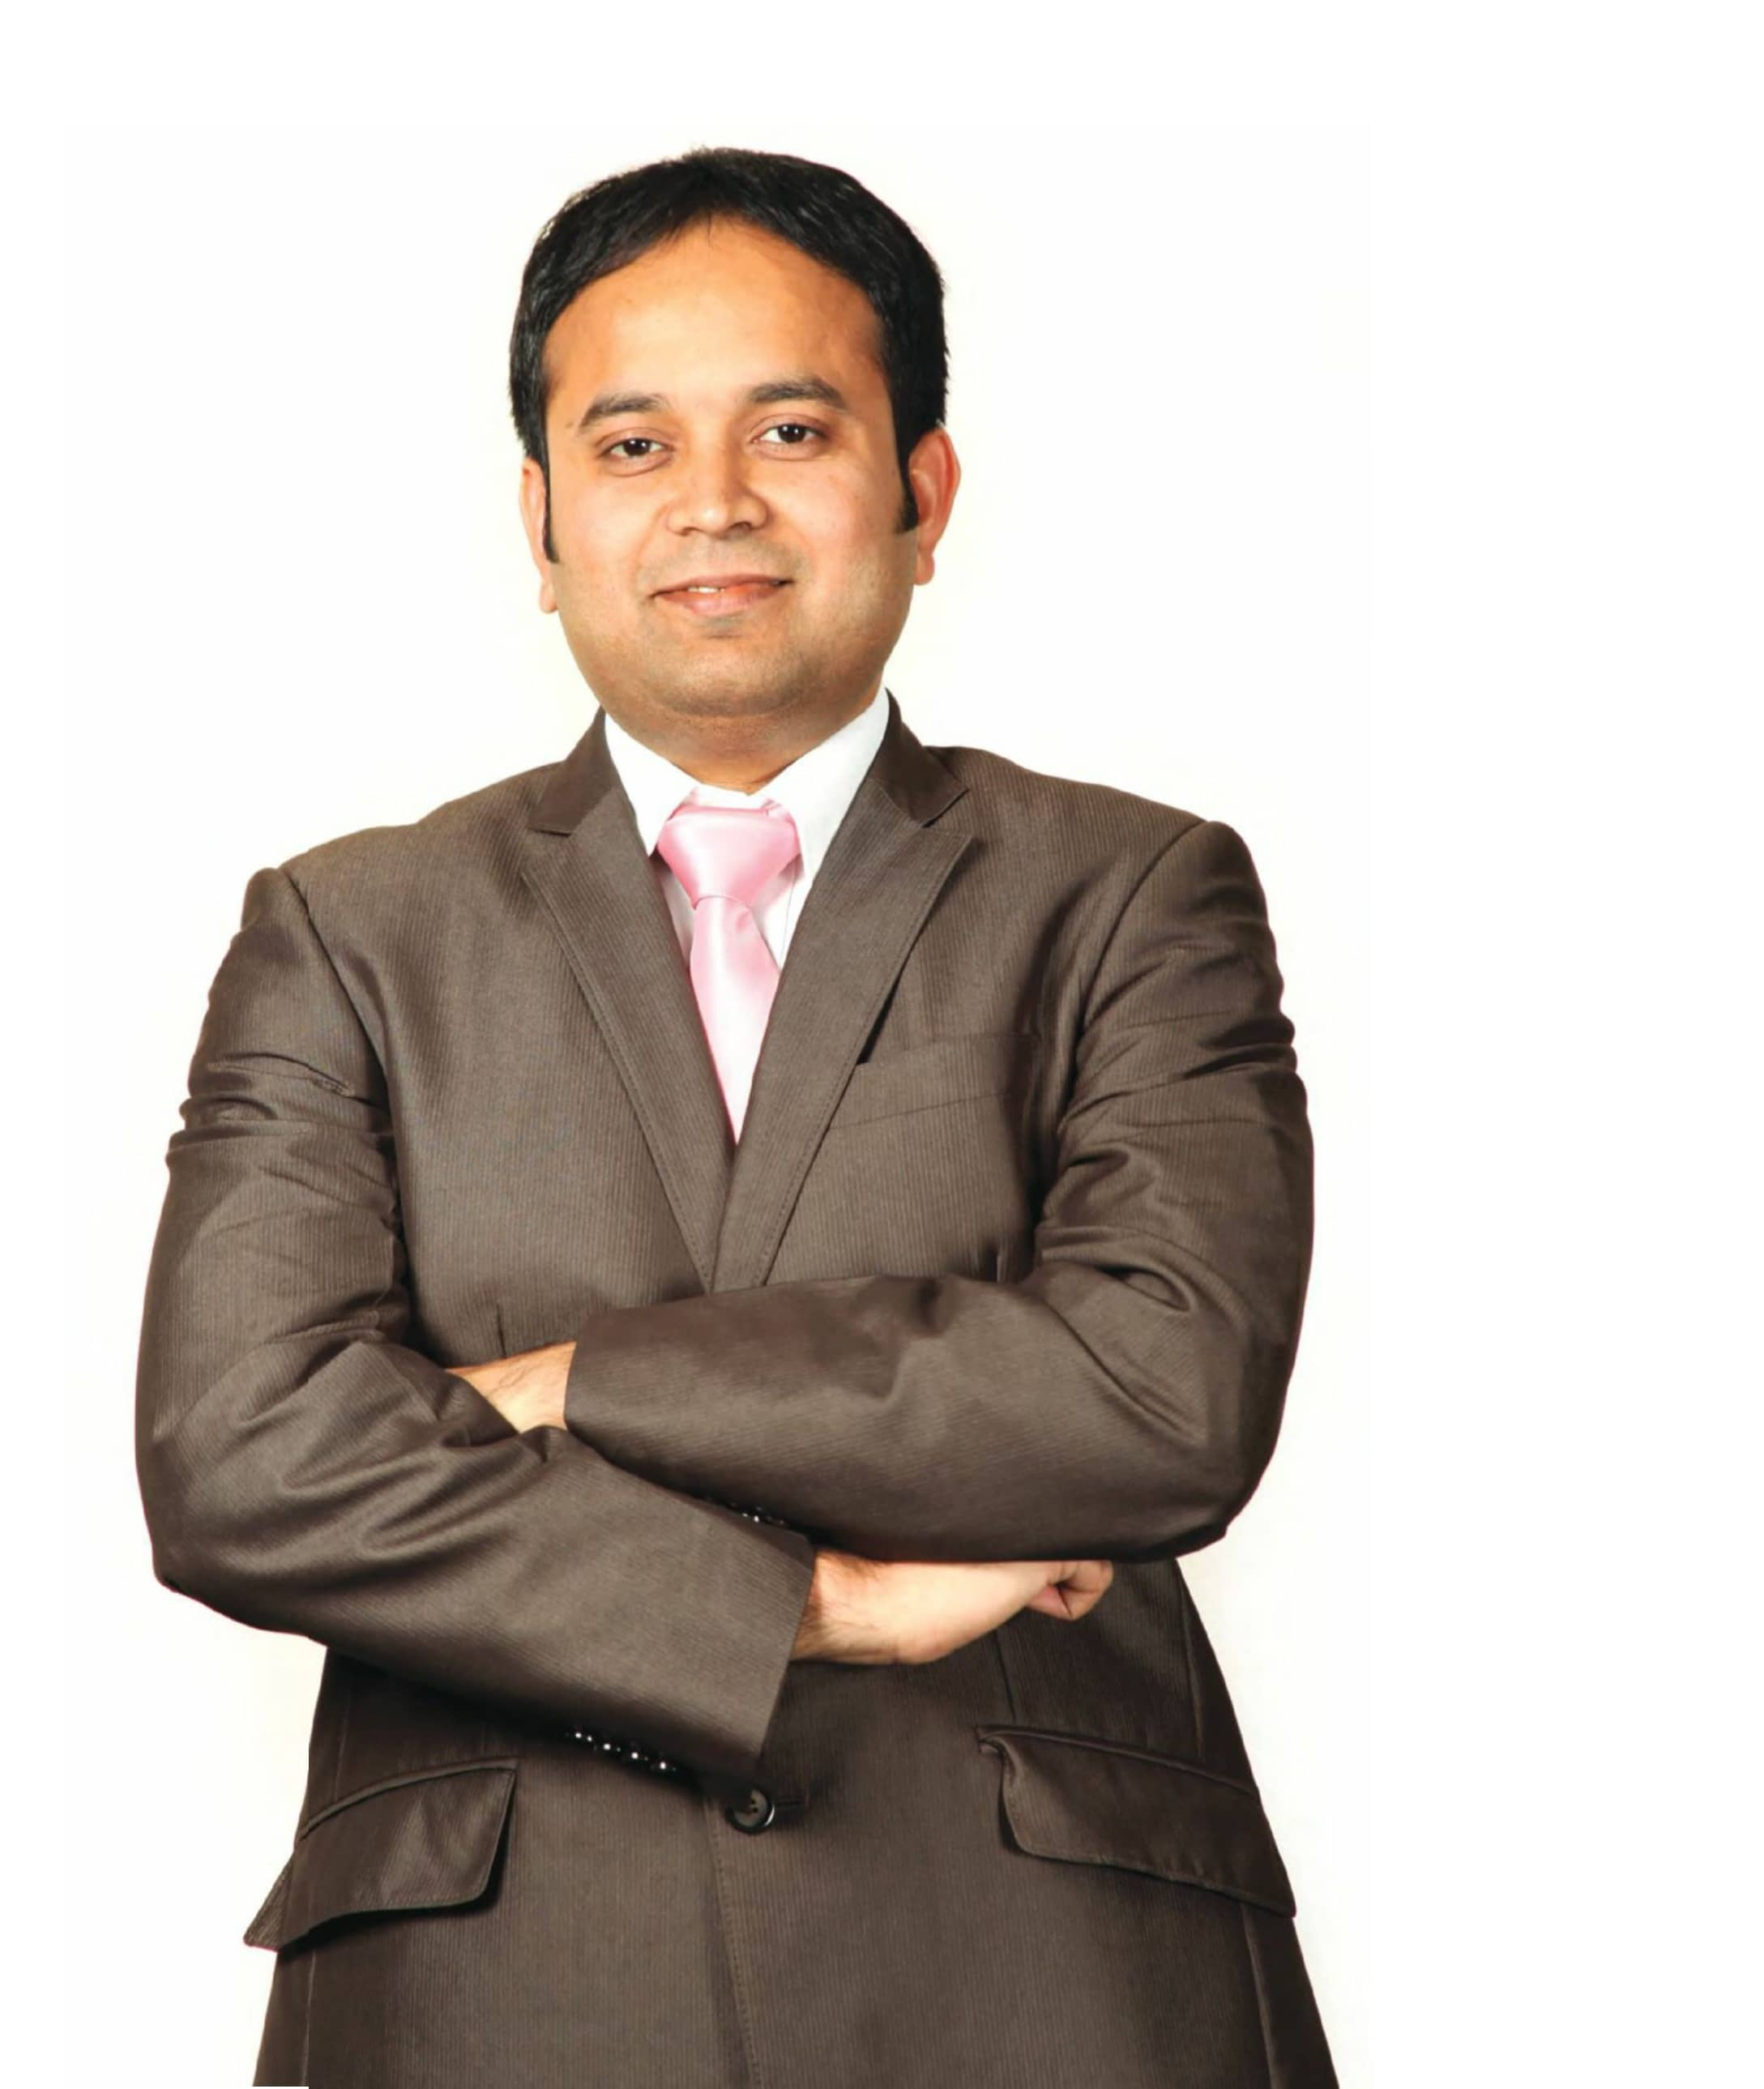 Opex Model Is Currently The Major Headache Of A CIO In India